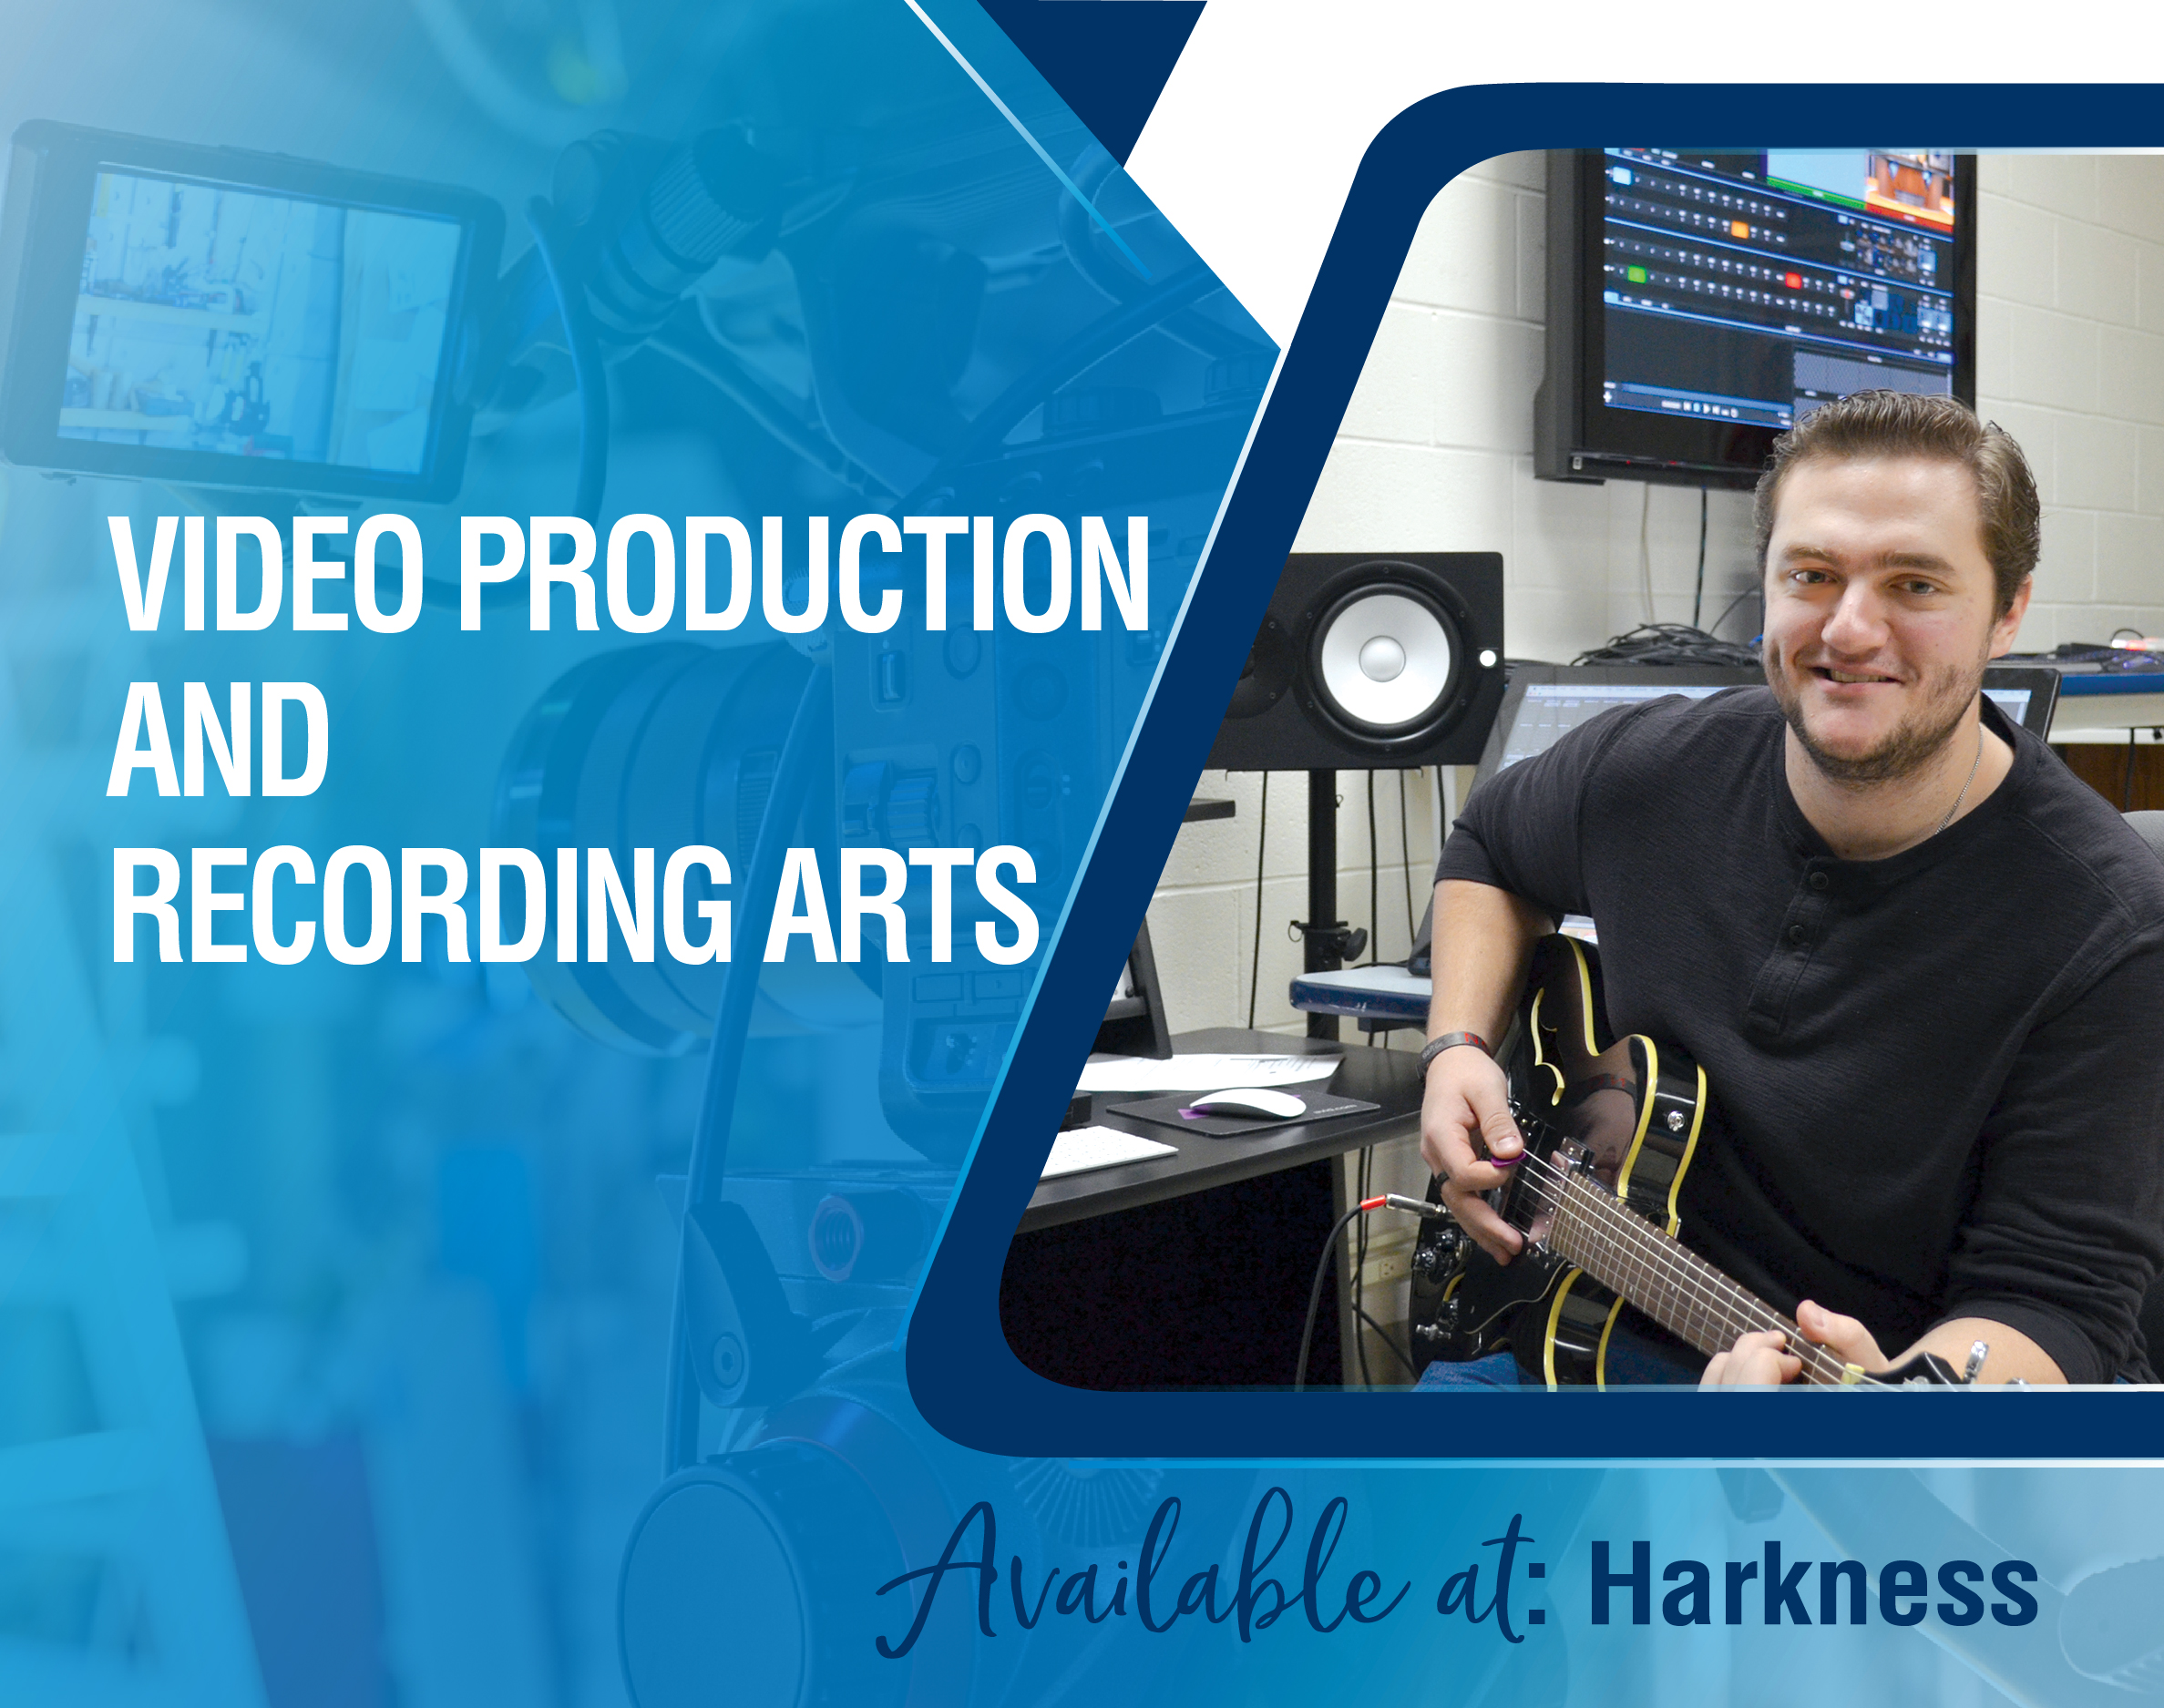 Video Production and Recording Arts